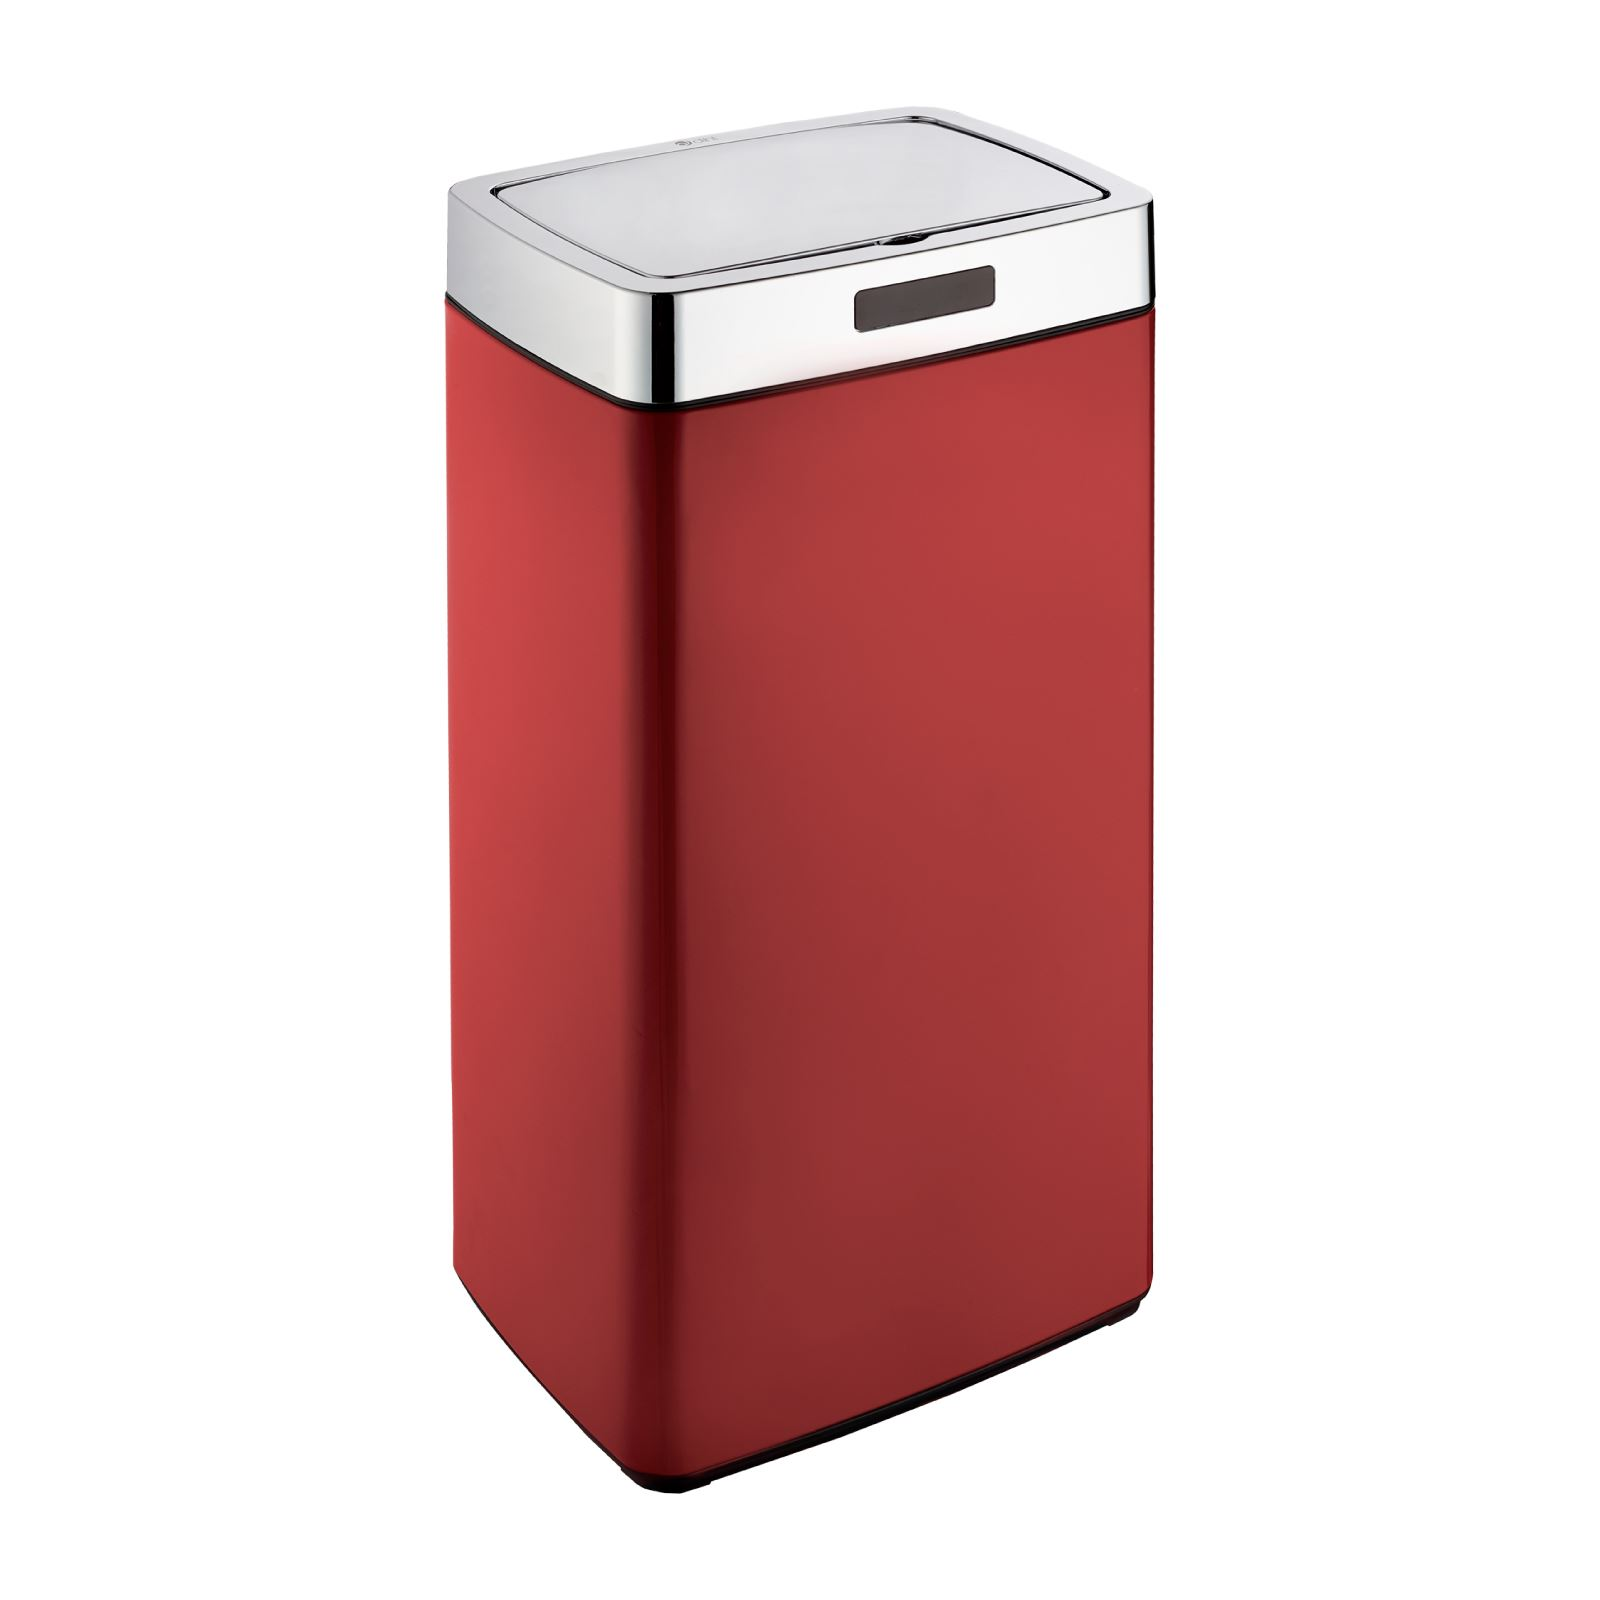 Kitchen Waste Bins: Dihl Round Rectangle Automatic Sensor Bin Chrome Lid All